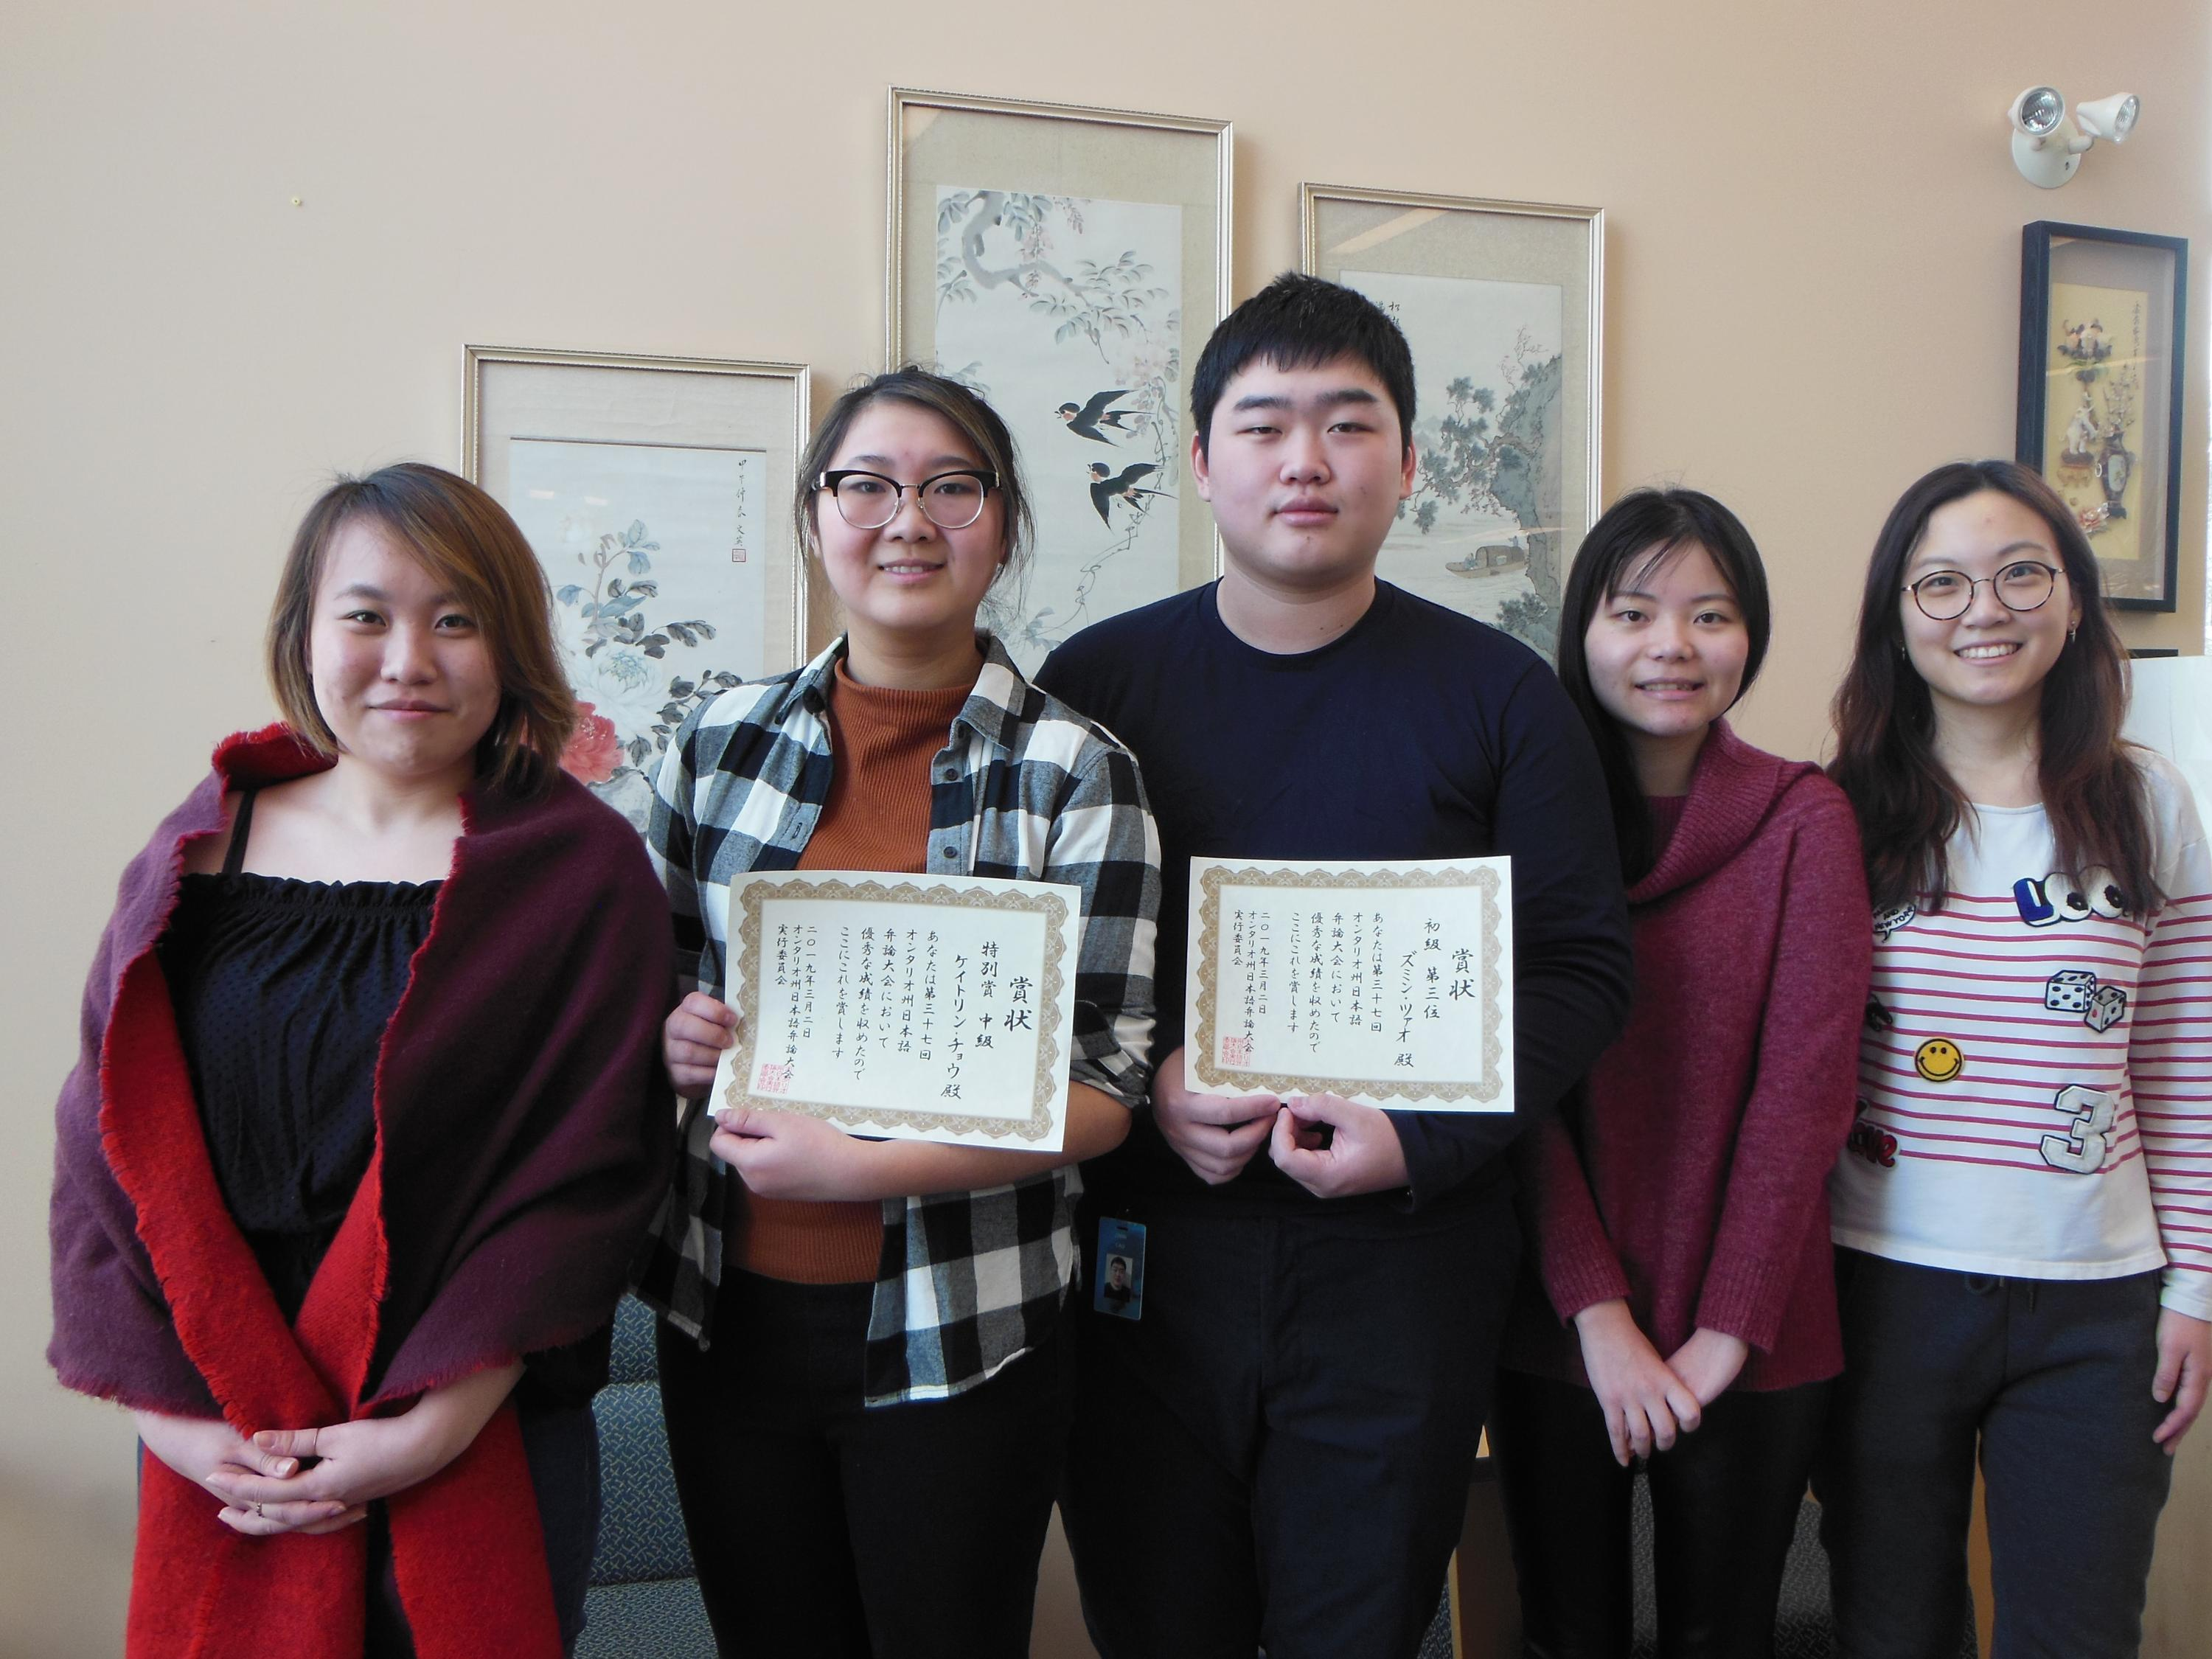 Five students standing in a row, two are their winning certificates.